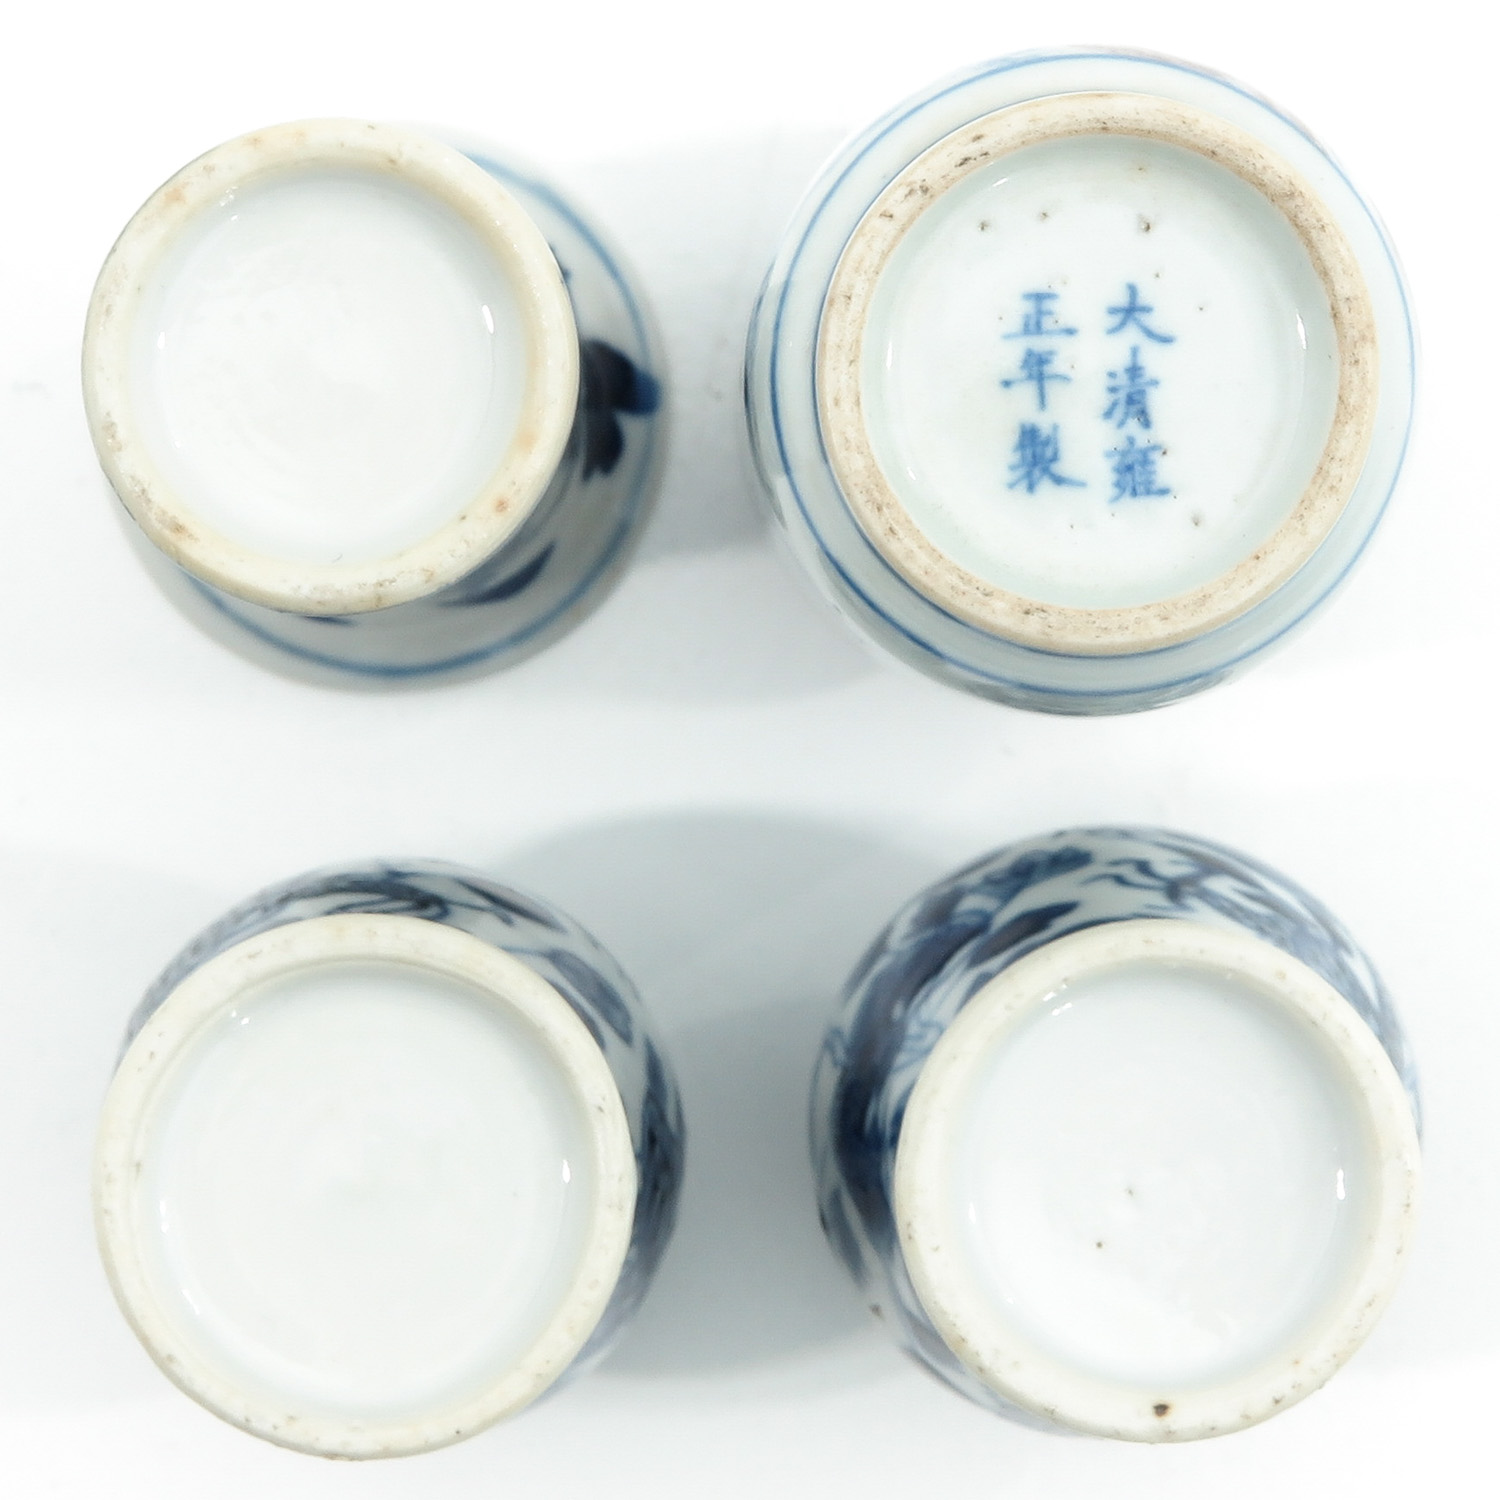 A Collection of 4 Miniature Vases - Image 6 of 10